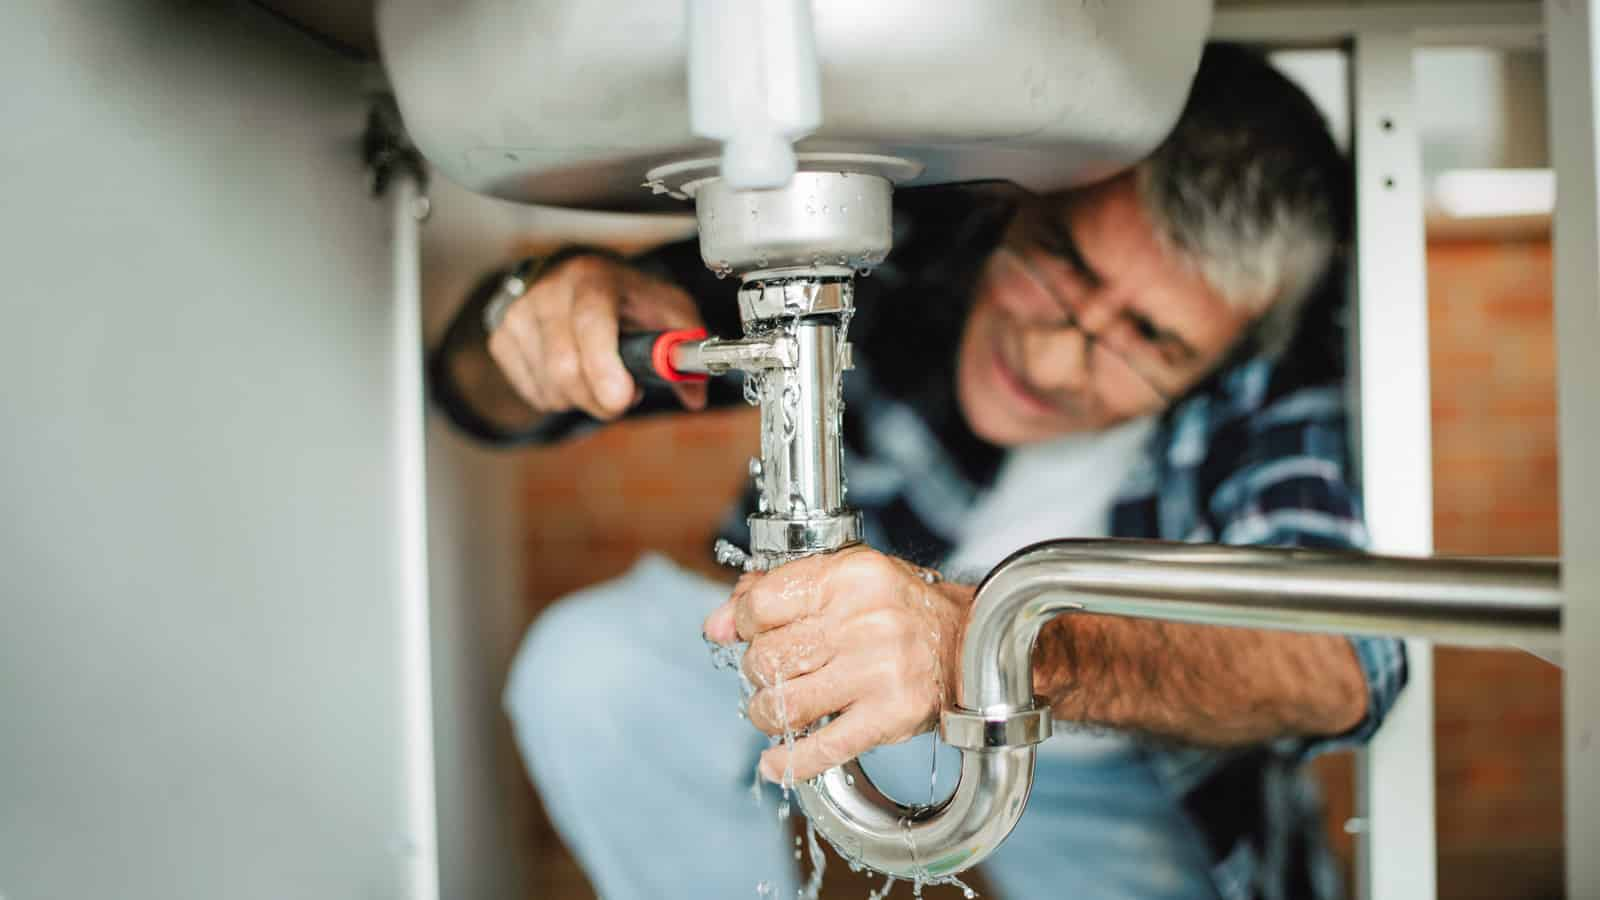 Preferred Plumbing & Drain of North Highlands